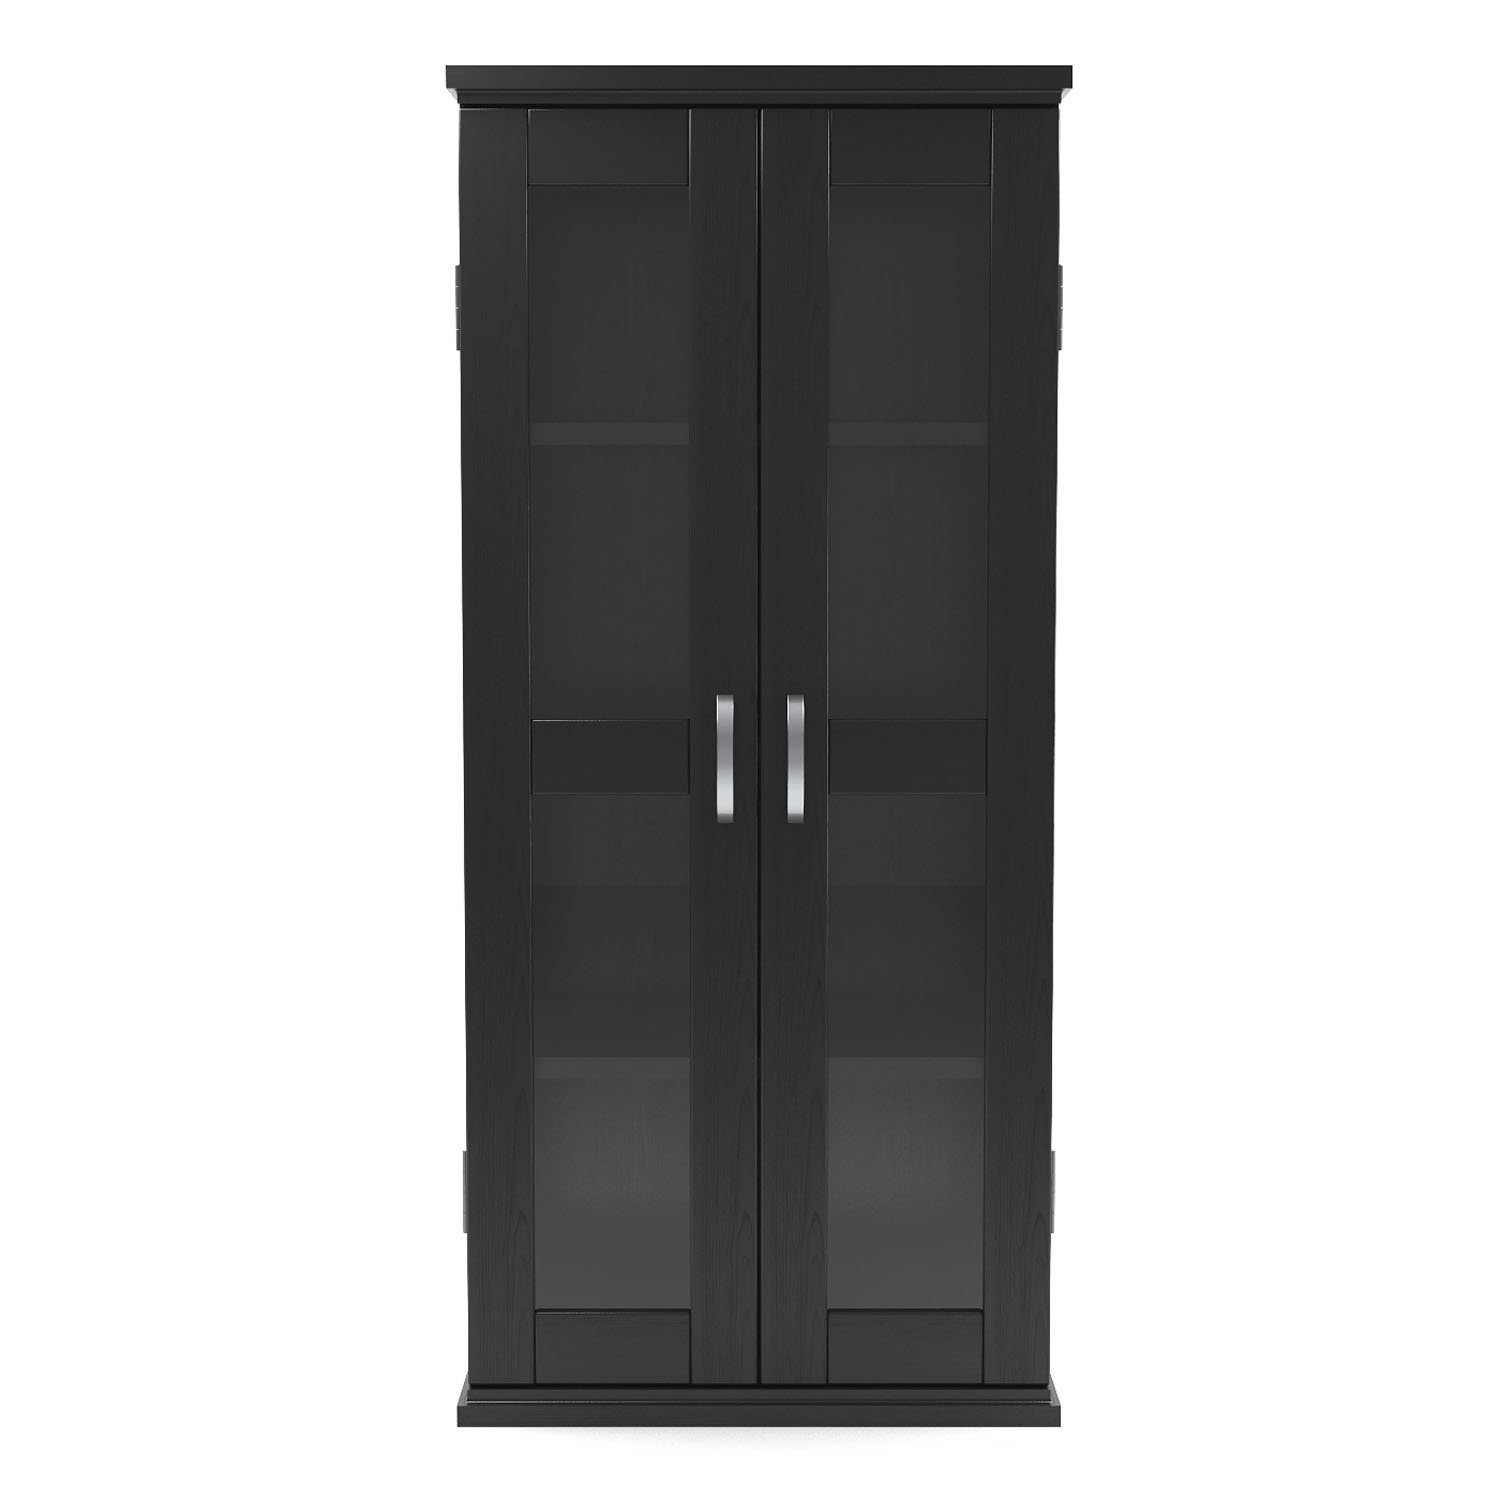 Gibson Living Kirkwell 41 Inch Wood DVD Tower in Black by Ryan Rove